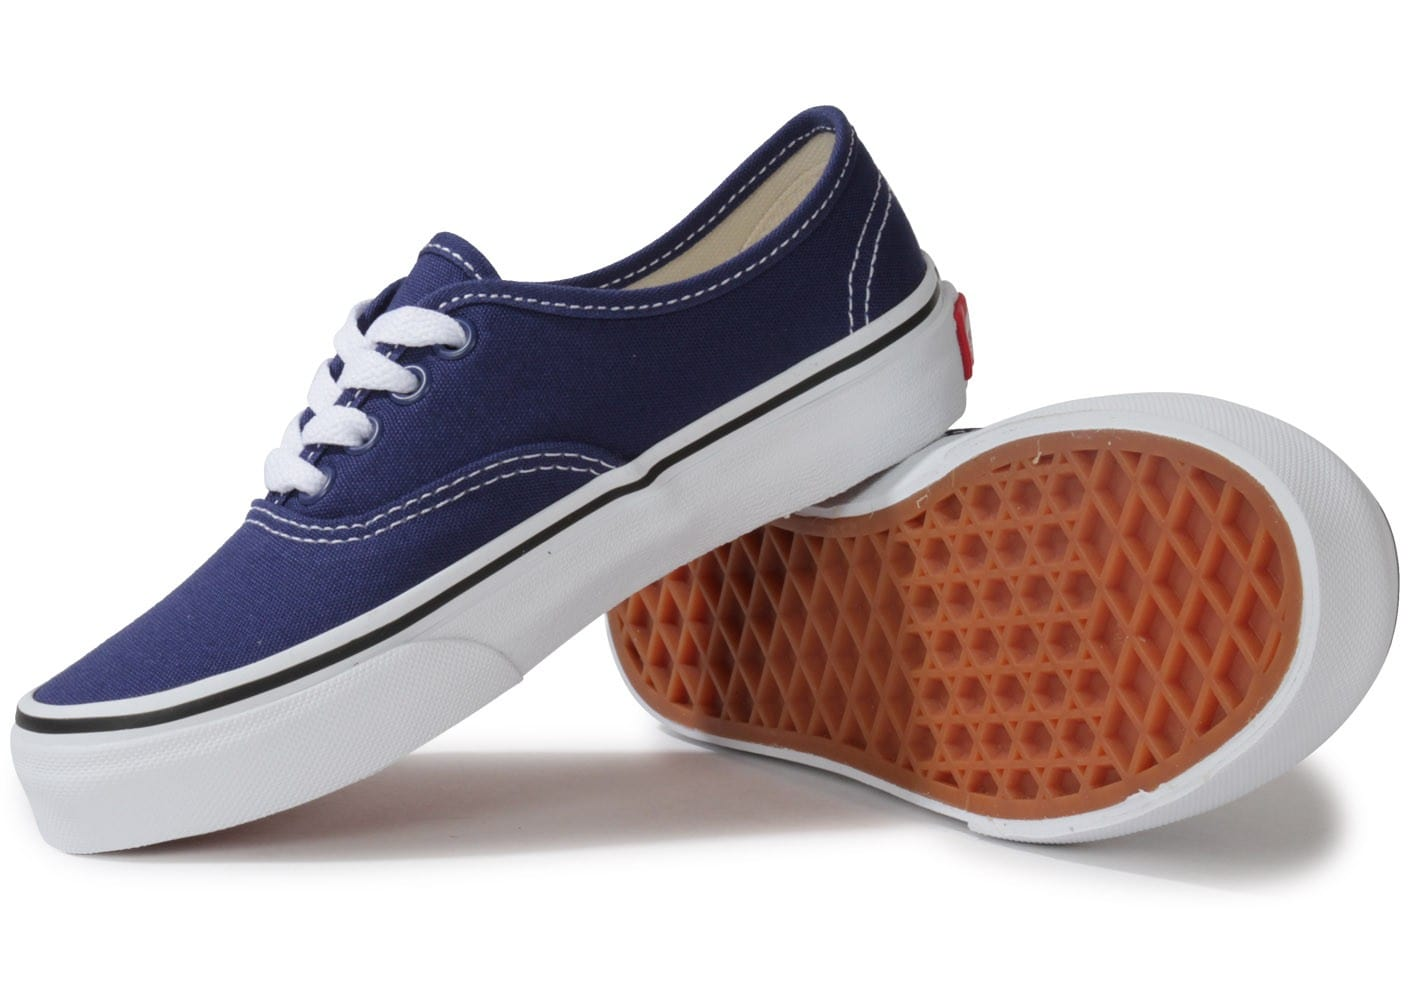 vans authentic enfant bleue chaussures toutes les baskets sold es chausport. Black Bedroom Furniture Sets. Home Design Ideas